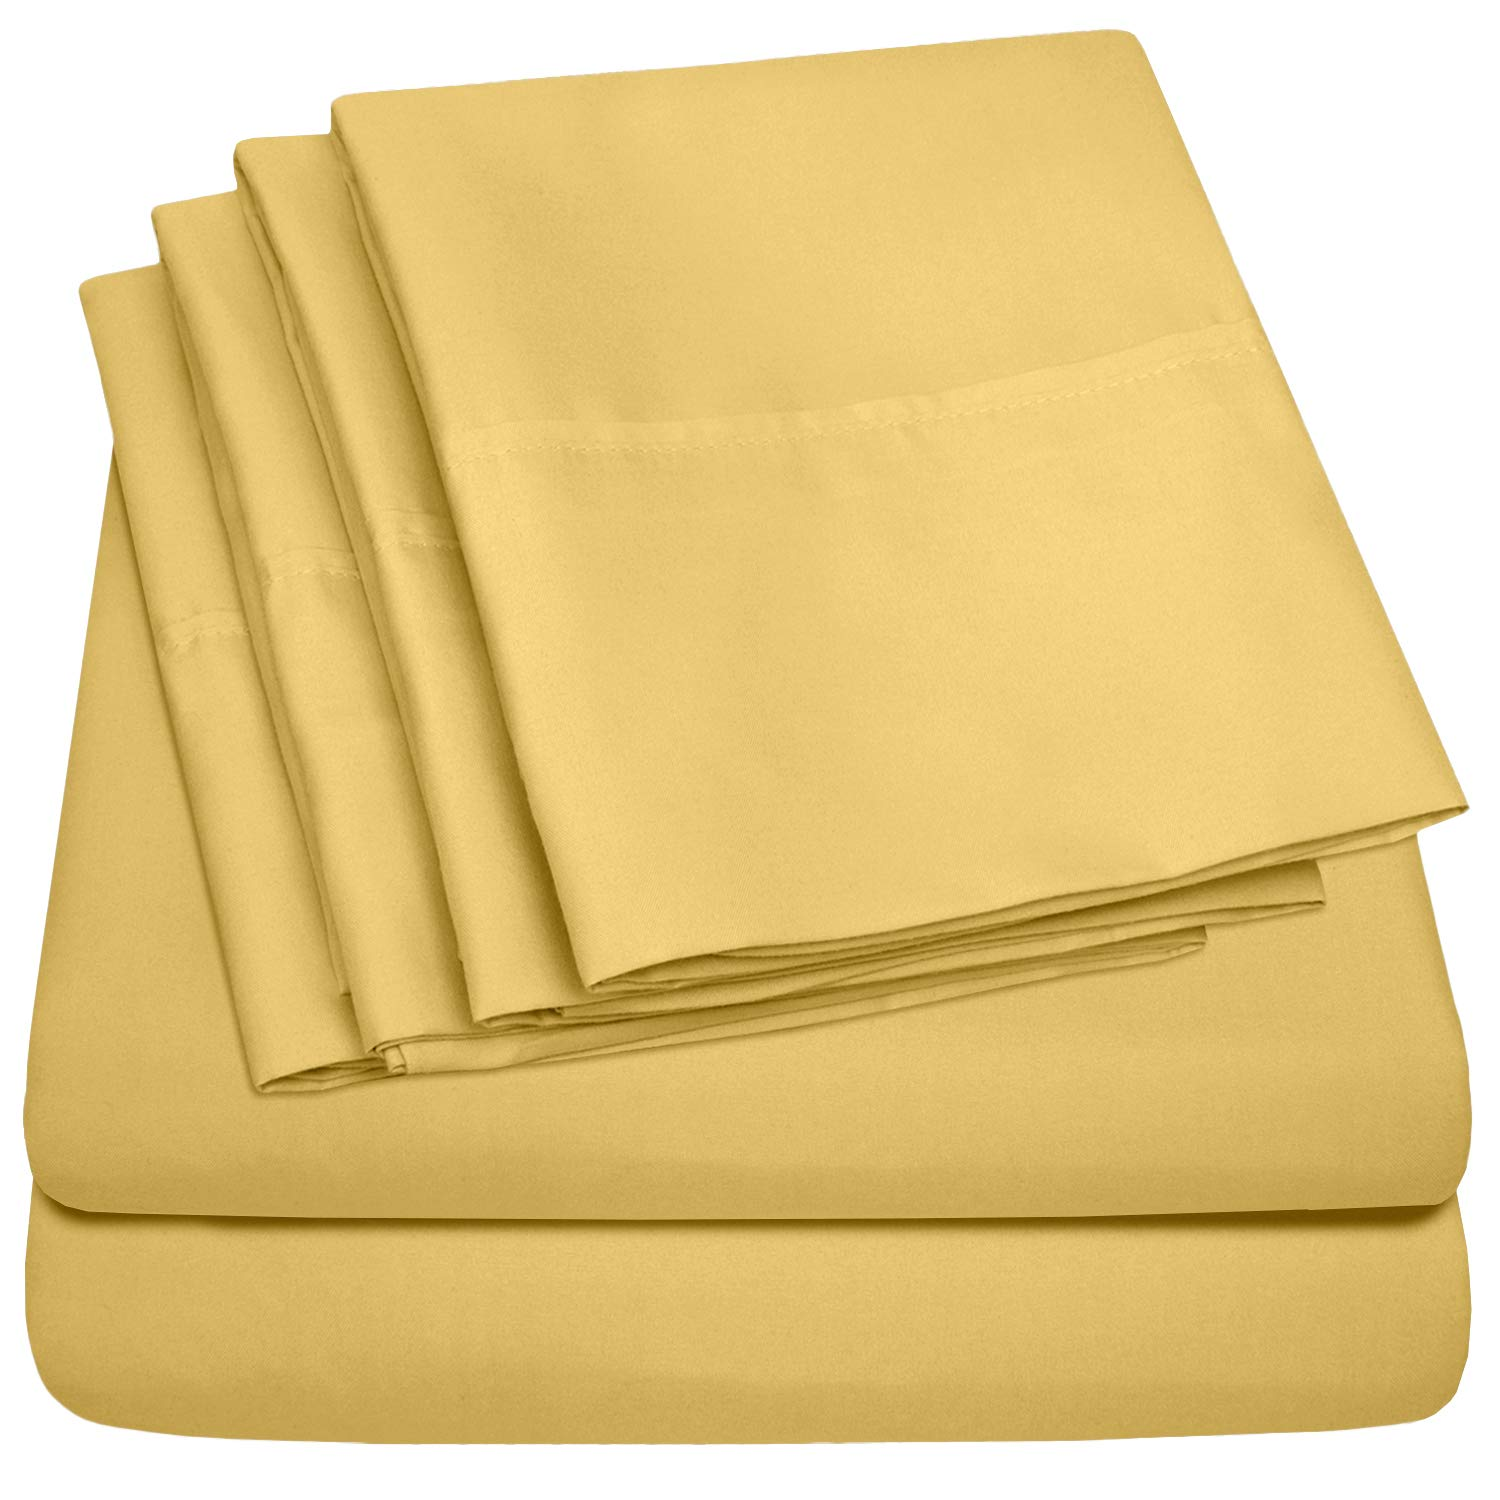 King Size Bed Sheets - 6 Piece 1500 Thread Count Fine Brushed Microfiber Deep Pocket King Sheet Set Bedding - 2 Extra Pillow Cases, Great Value, King, Yellow